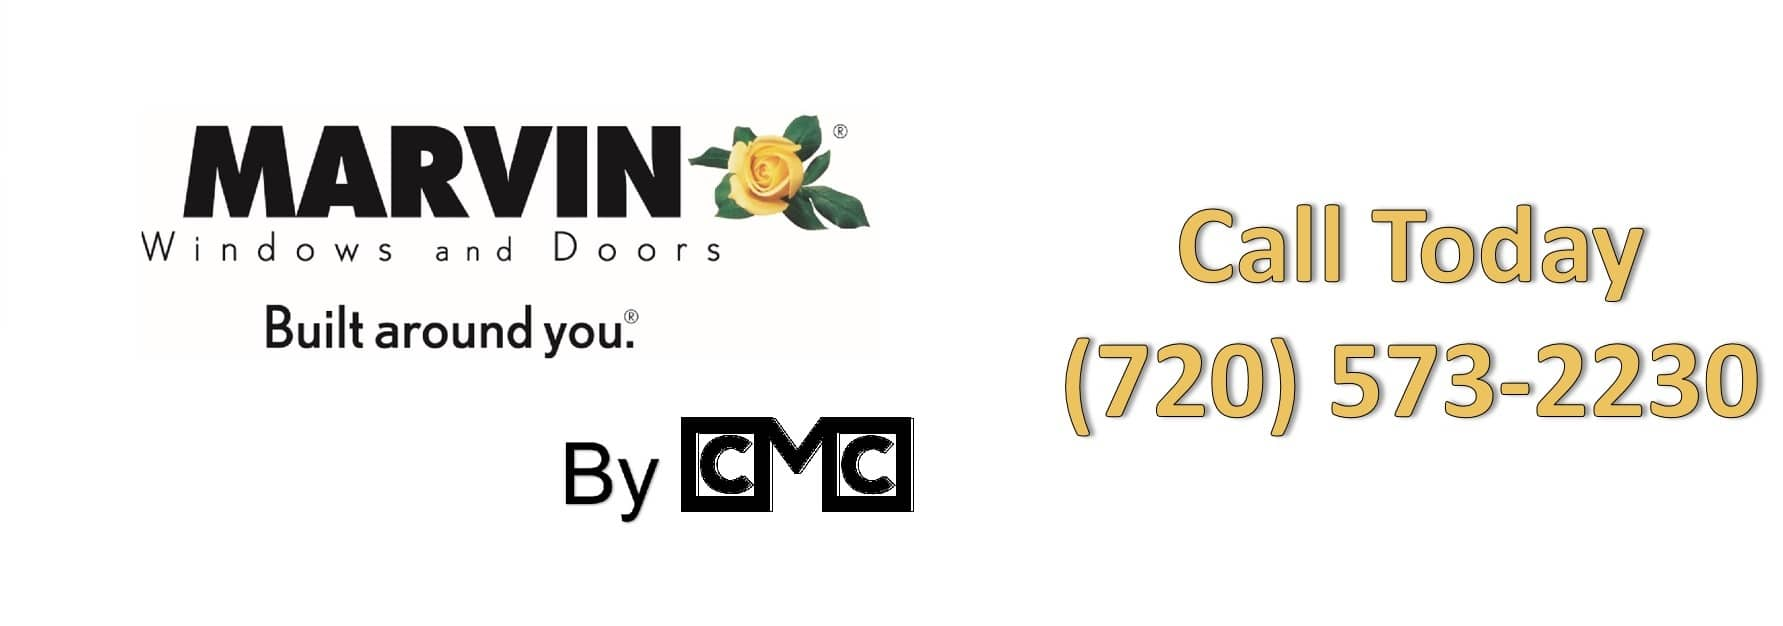 Marvin Windows and Doors by CMC Mobile Retina Logo